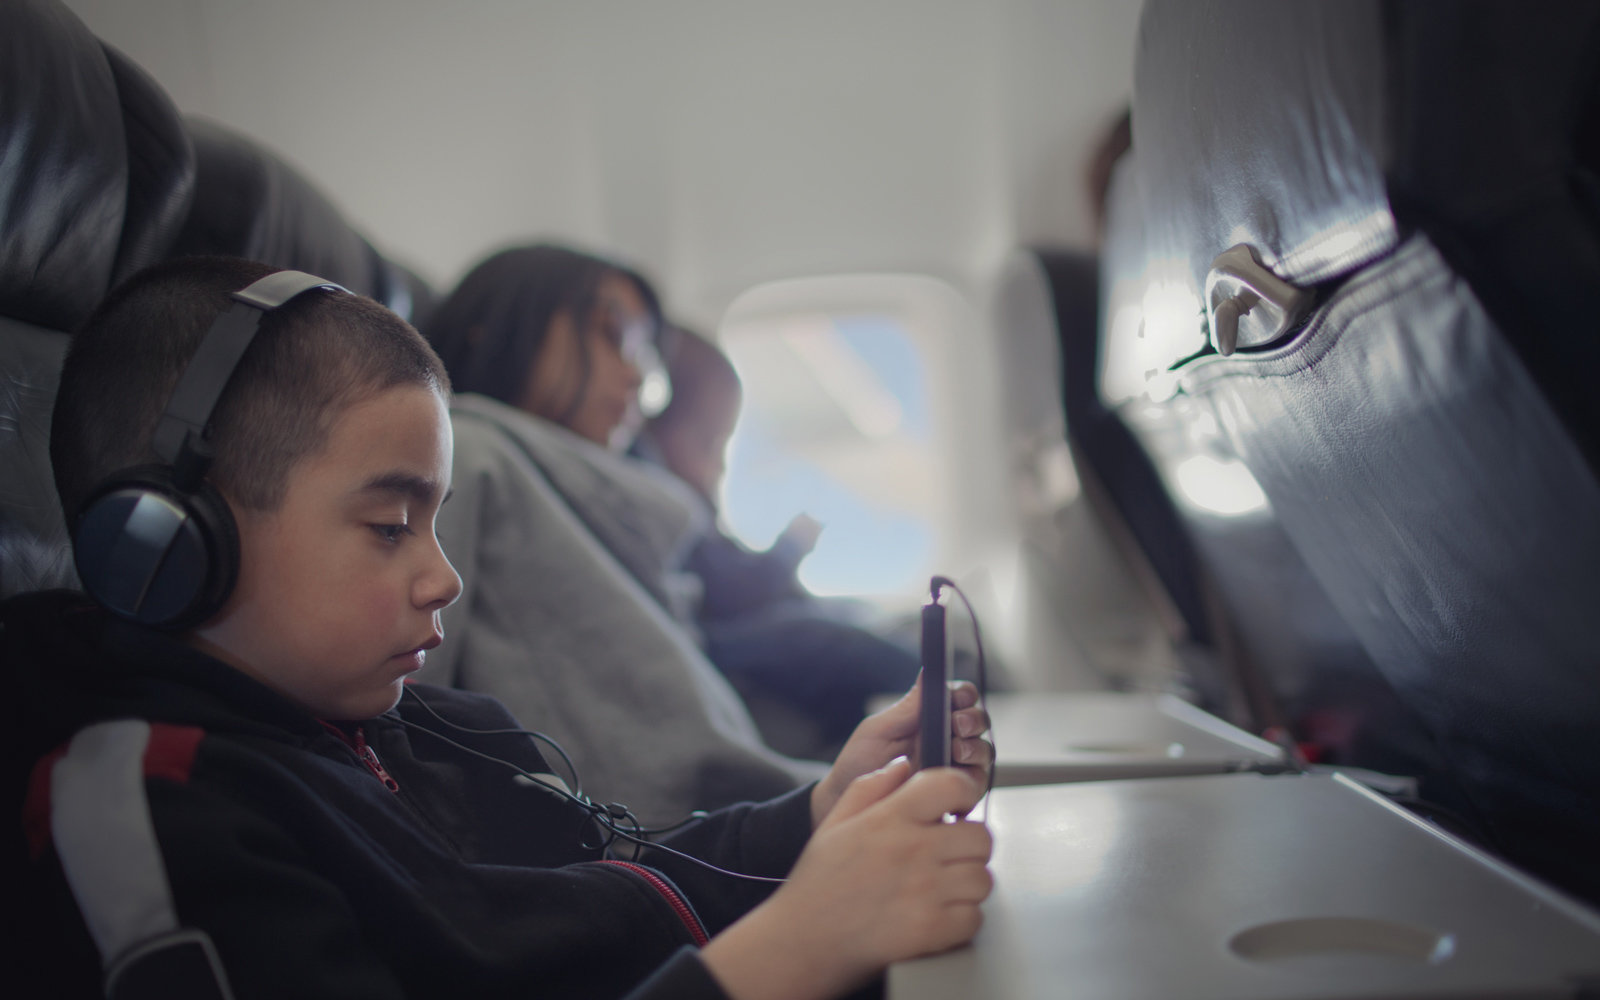 Electronics ban would mean no laptops or tablets in the cabin.